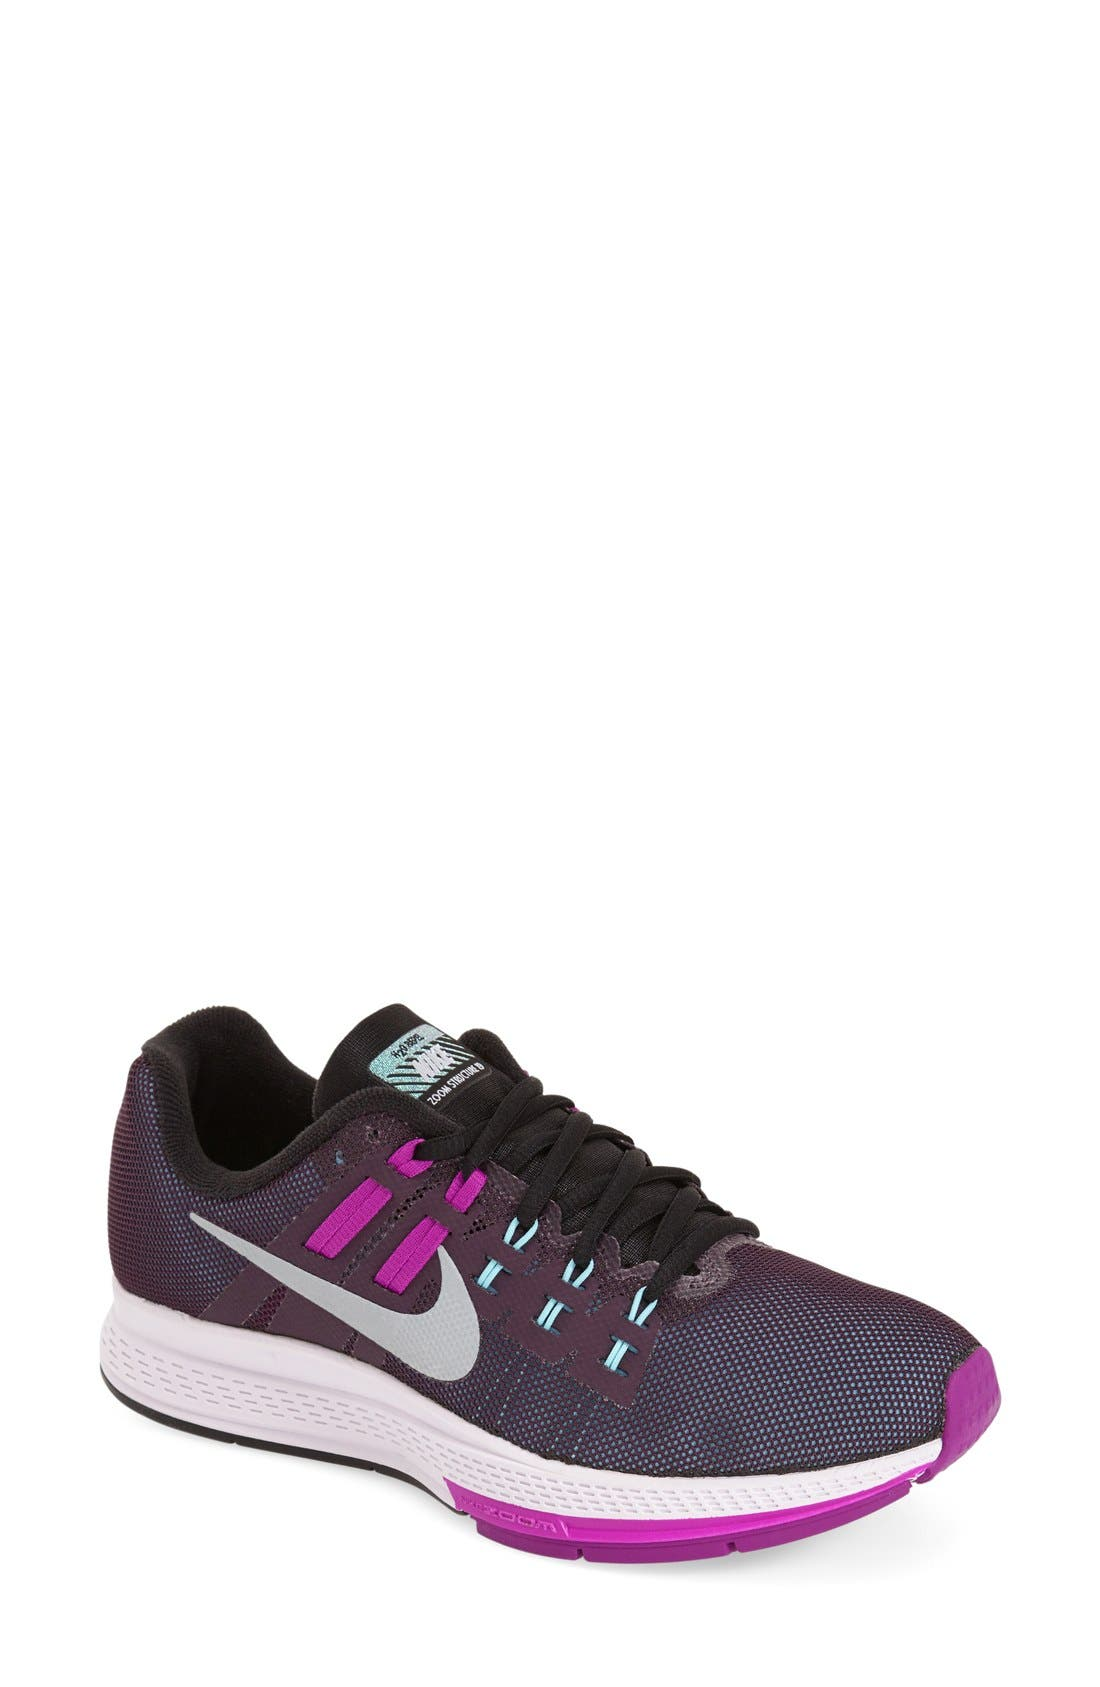 Alternate Image 1 Selected - Nike 'Air Zoom Structure 19' Running Shoe (Women)